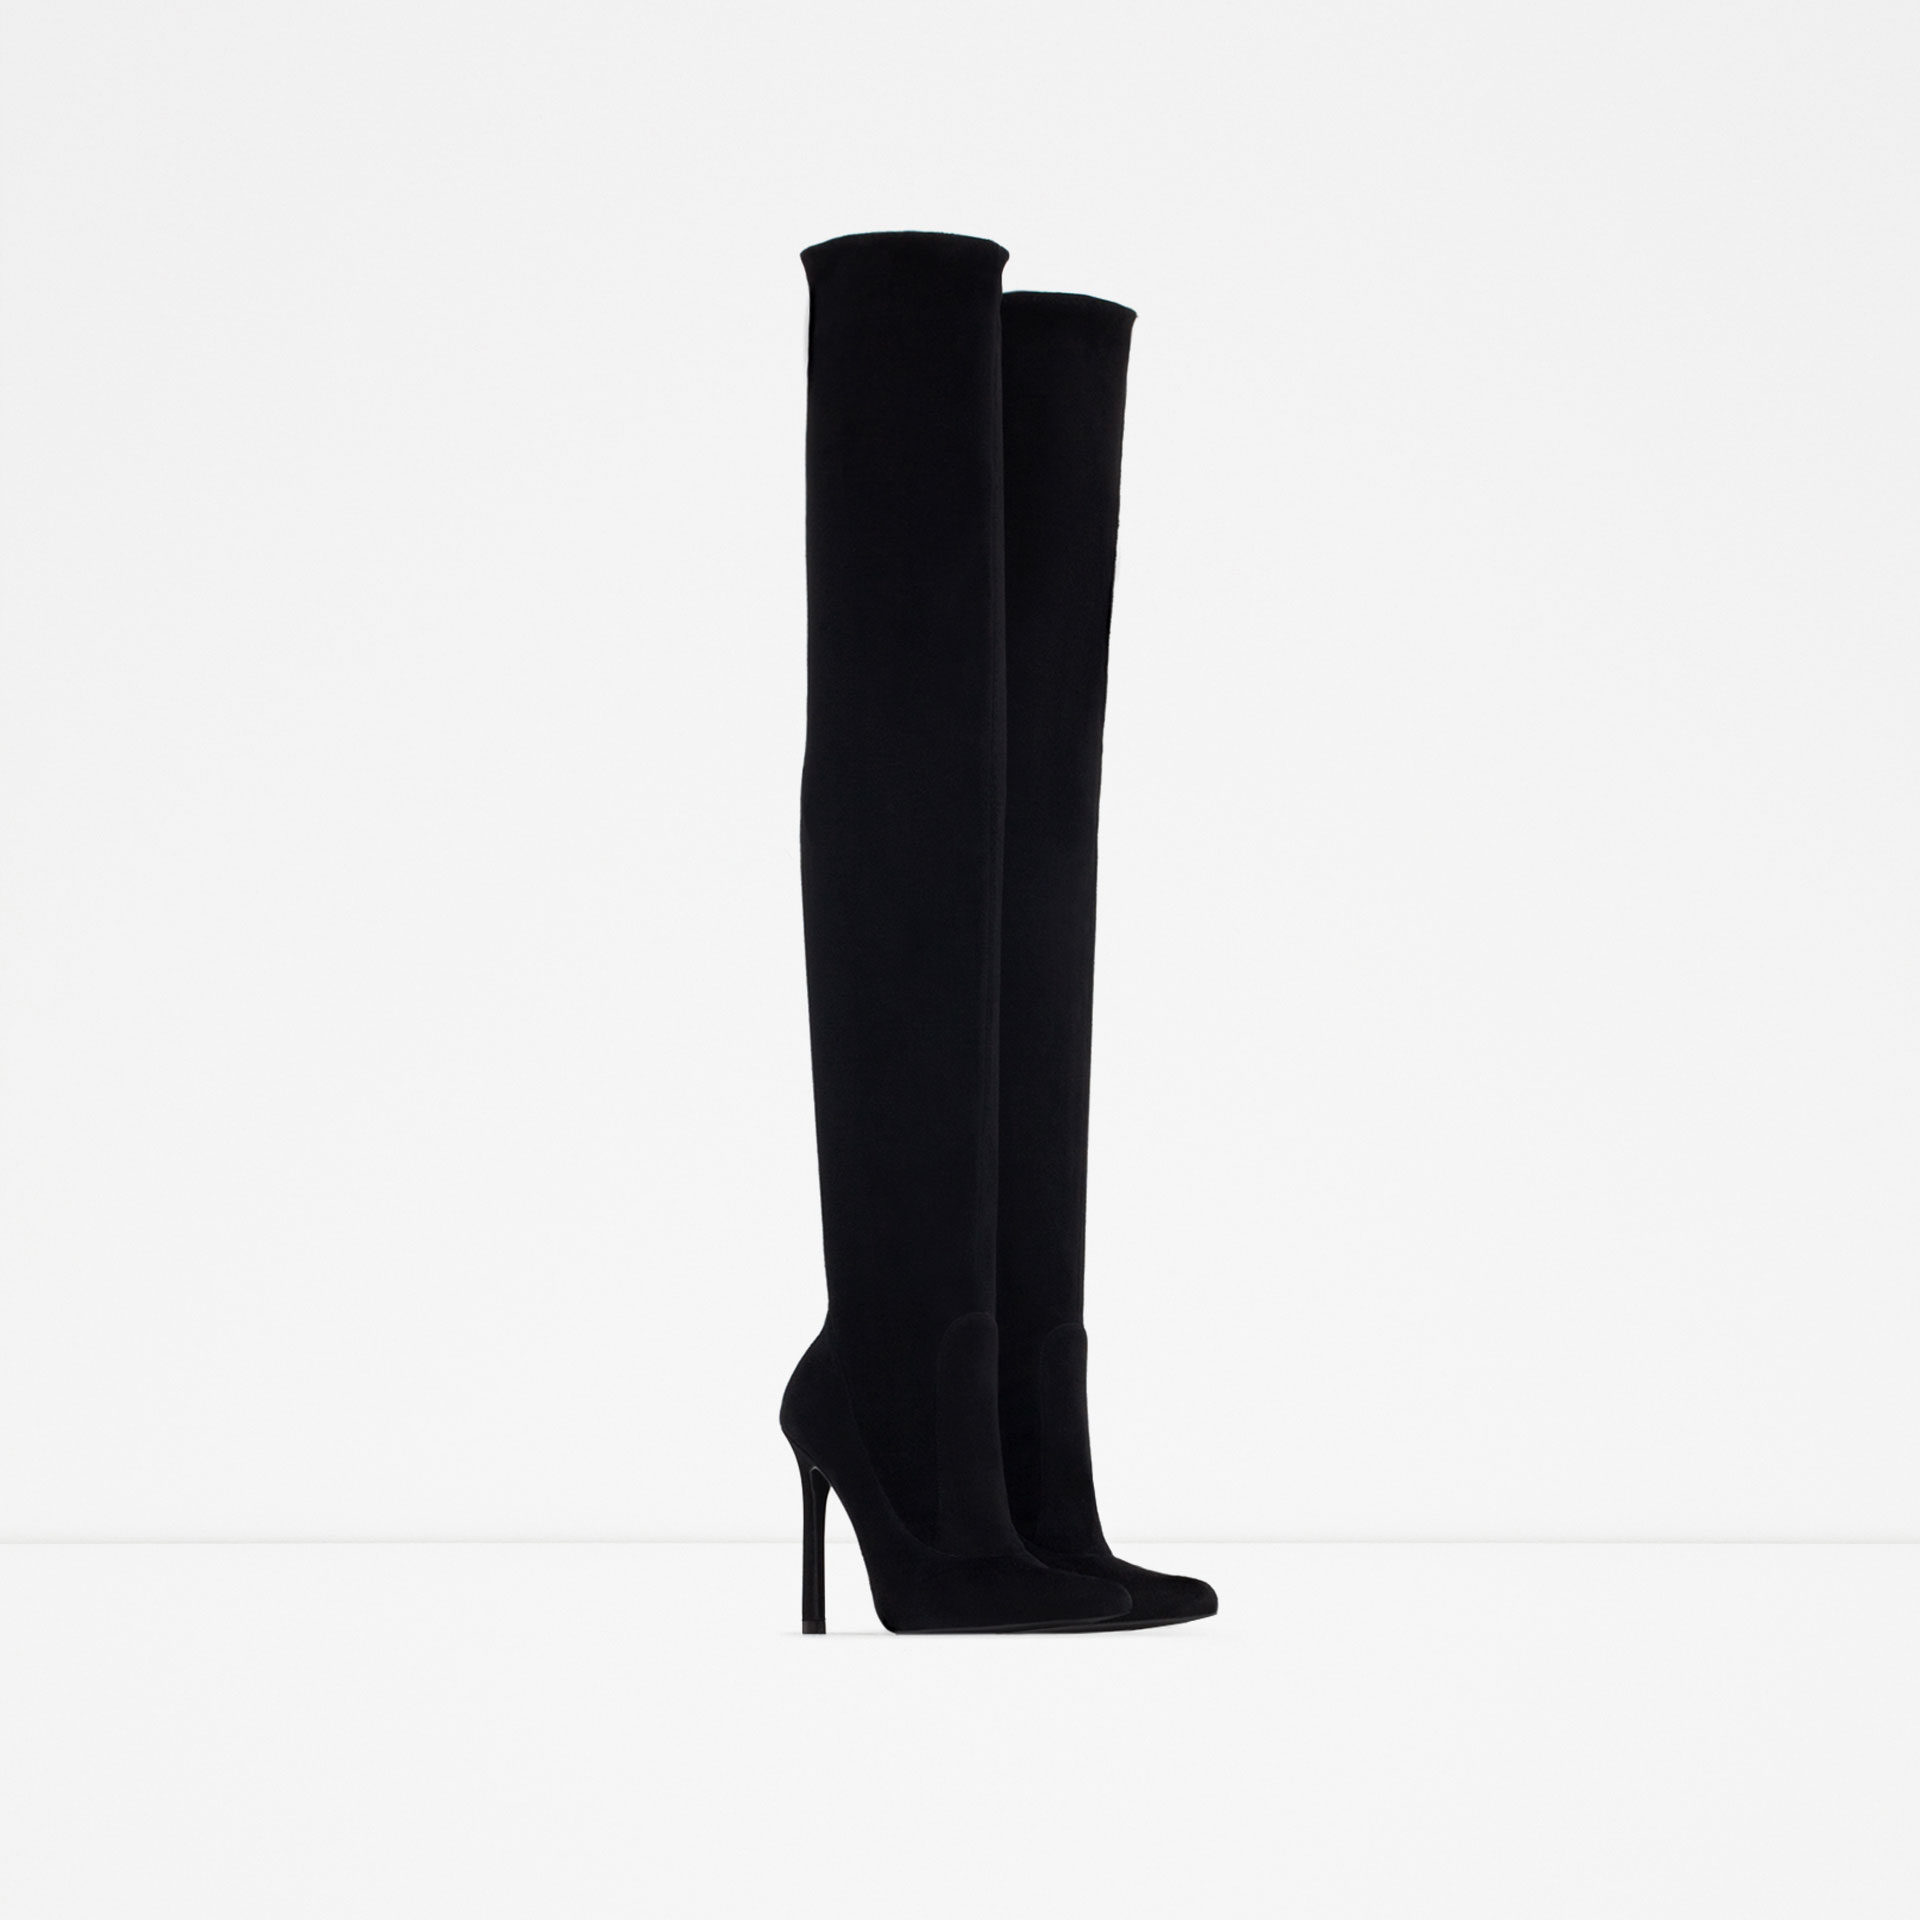 9199ac93a61 OVER THE KNEE HIGH HEEL LEATHER BOOTS - View all - Shoes - WOMAN | ZARA  United States